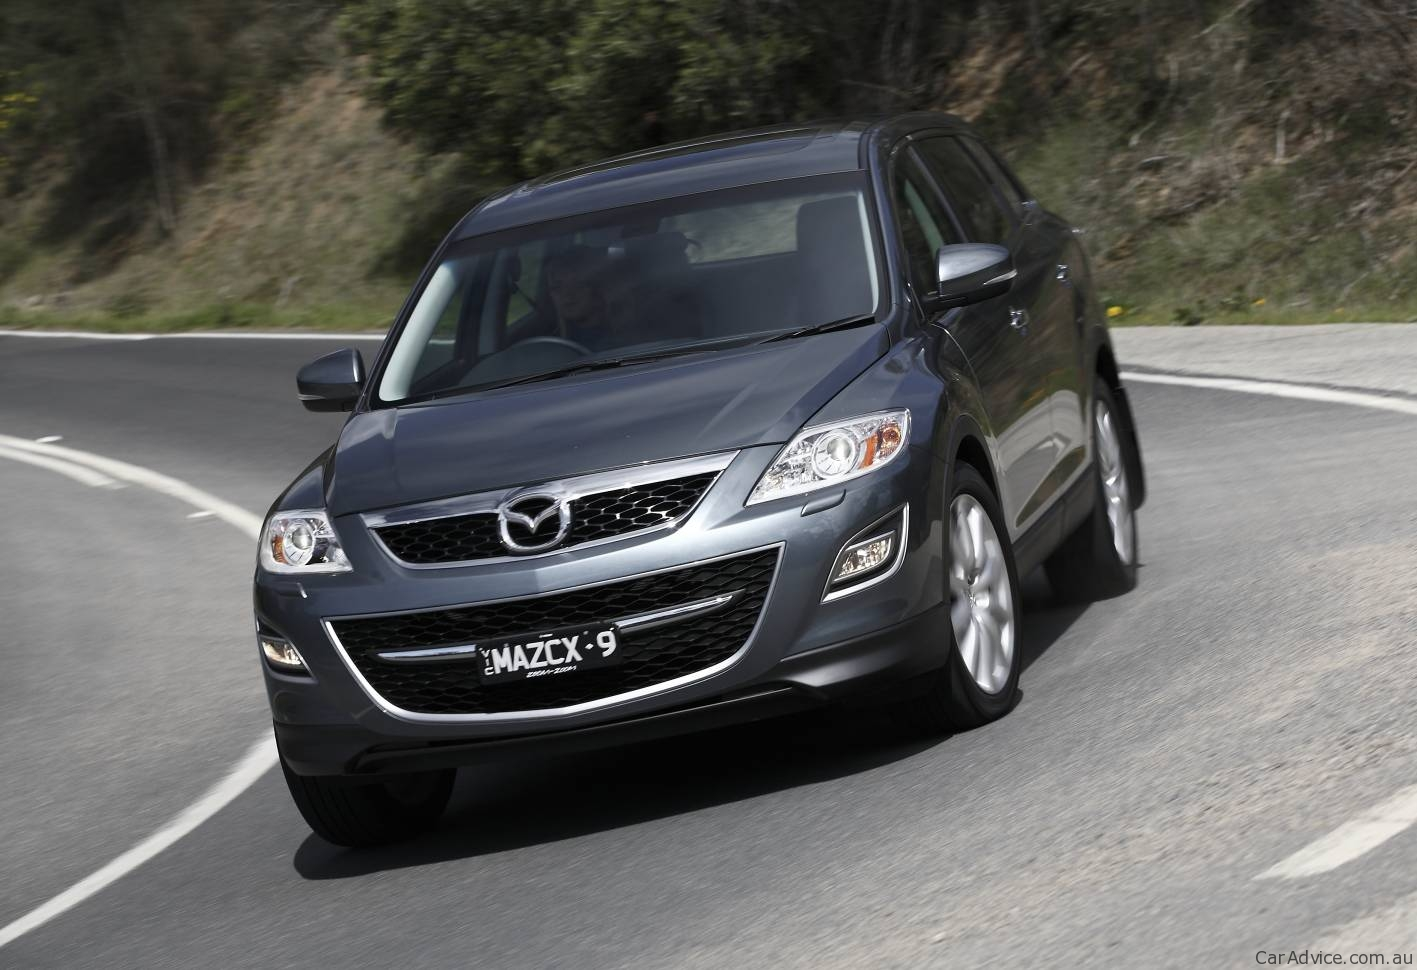 mazda cx 9 review road test photos caradvice. Black Bedroom Furniture Sets. Home Design Ideas